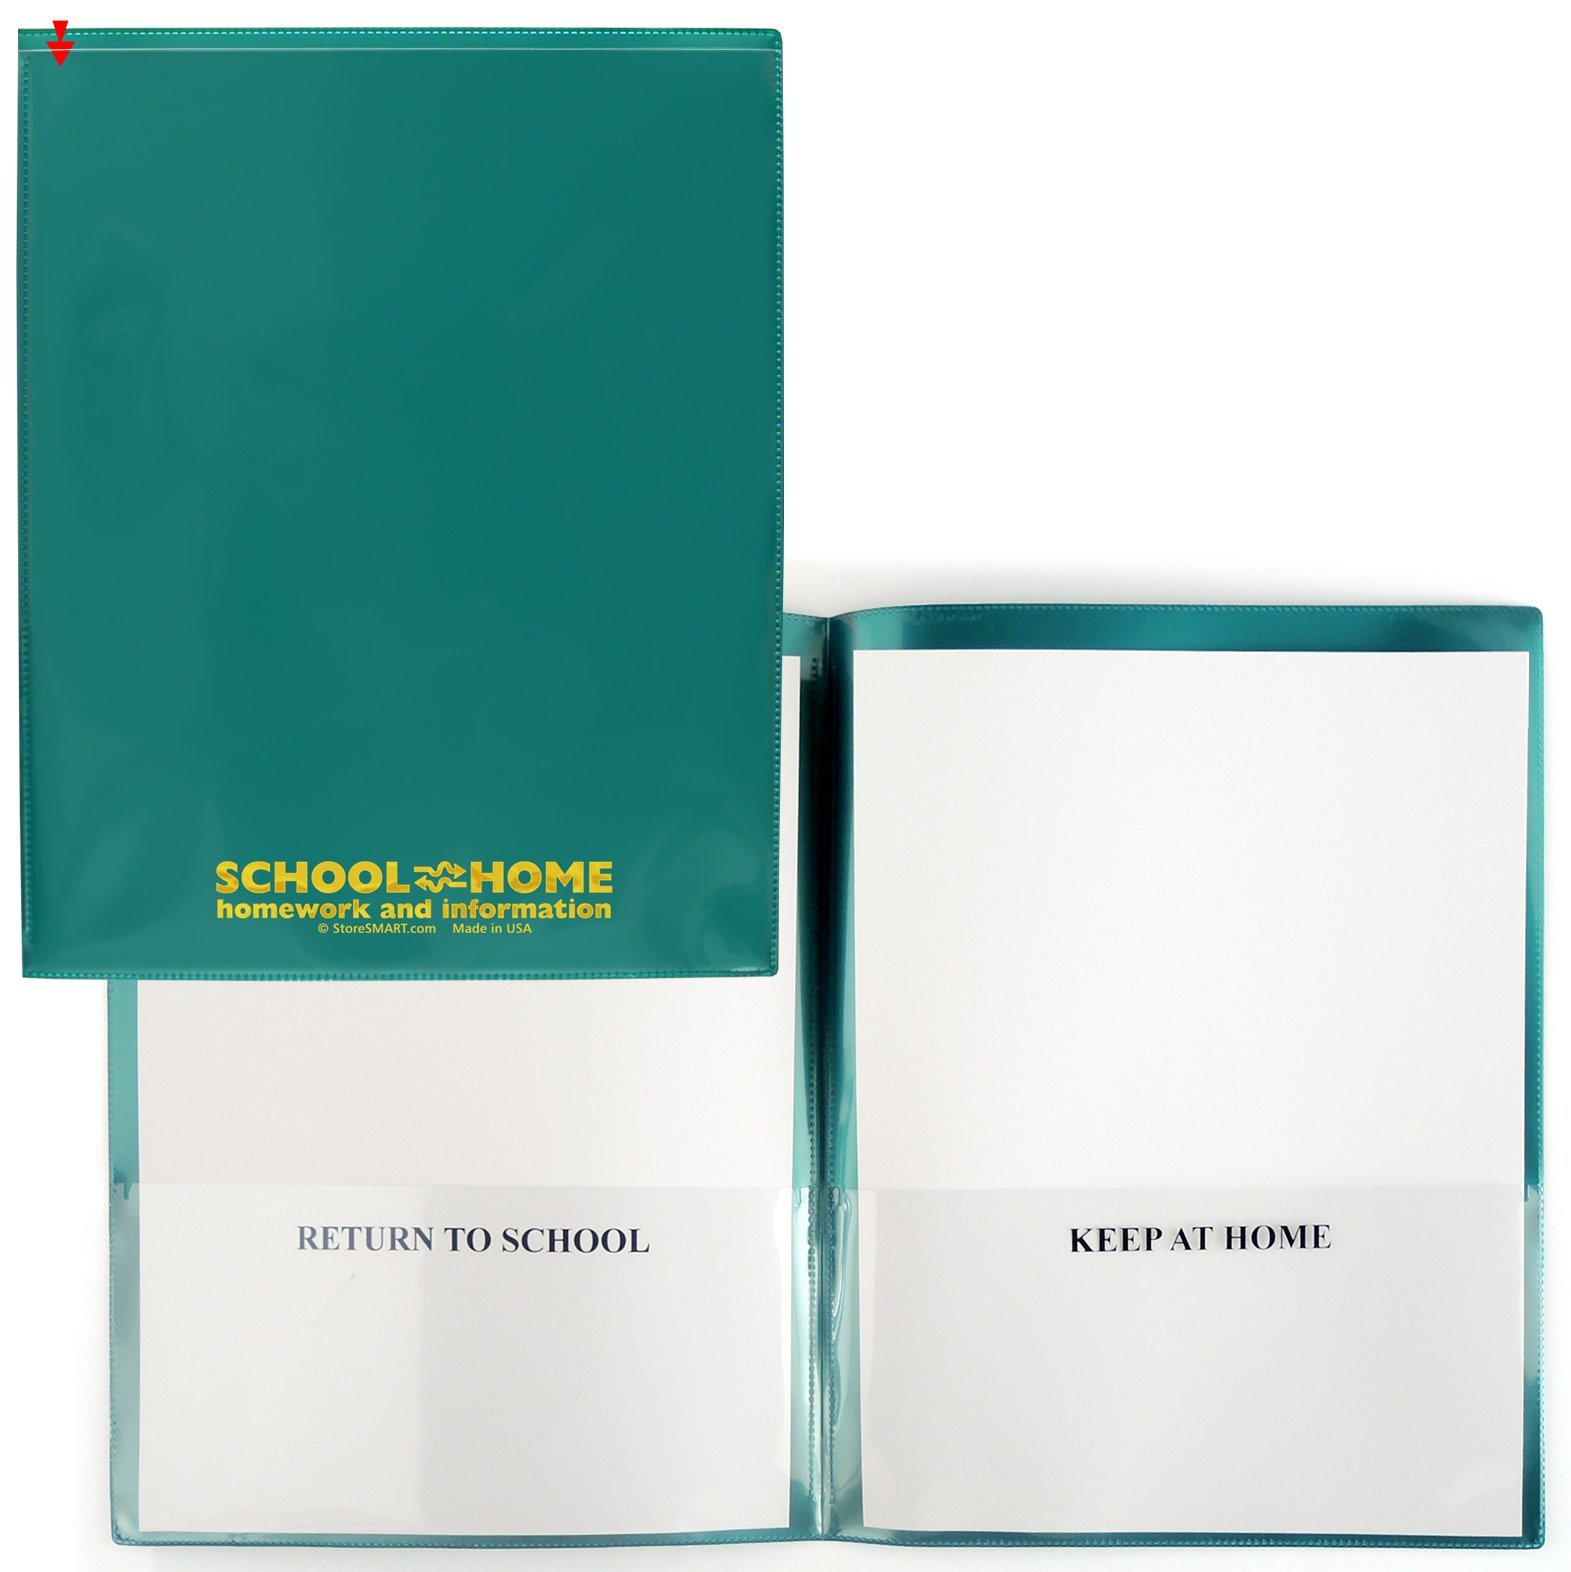 StoreSMART - School / Home Folders - Metallic Green - 30-Pack - Archival Durable Plastic - Homework and Information - SH900SV-MG30